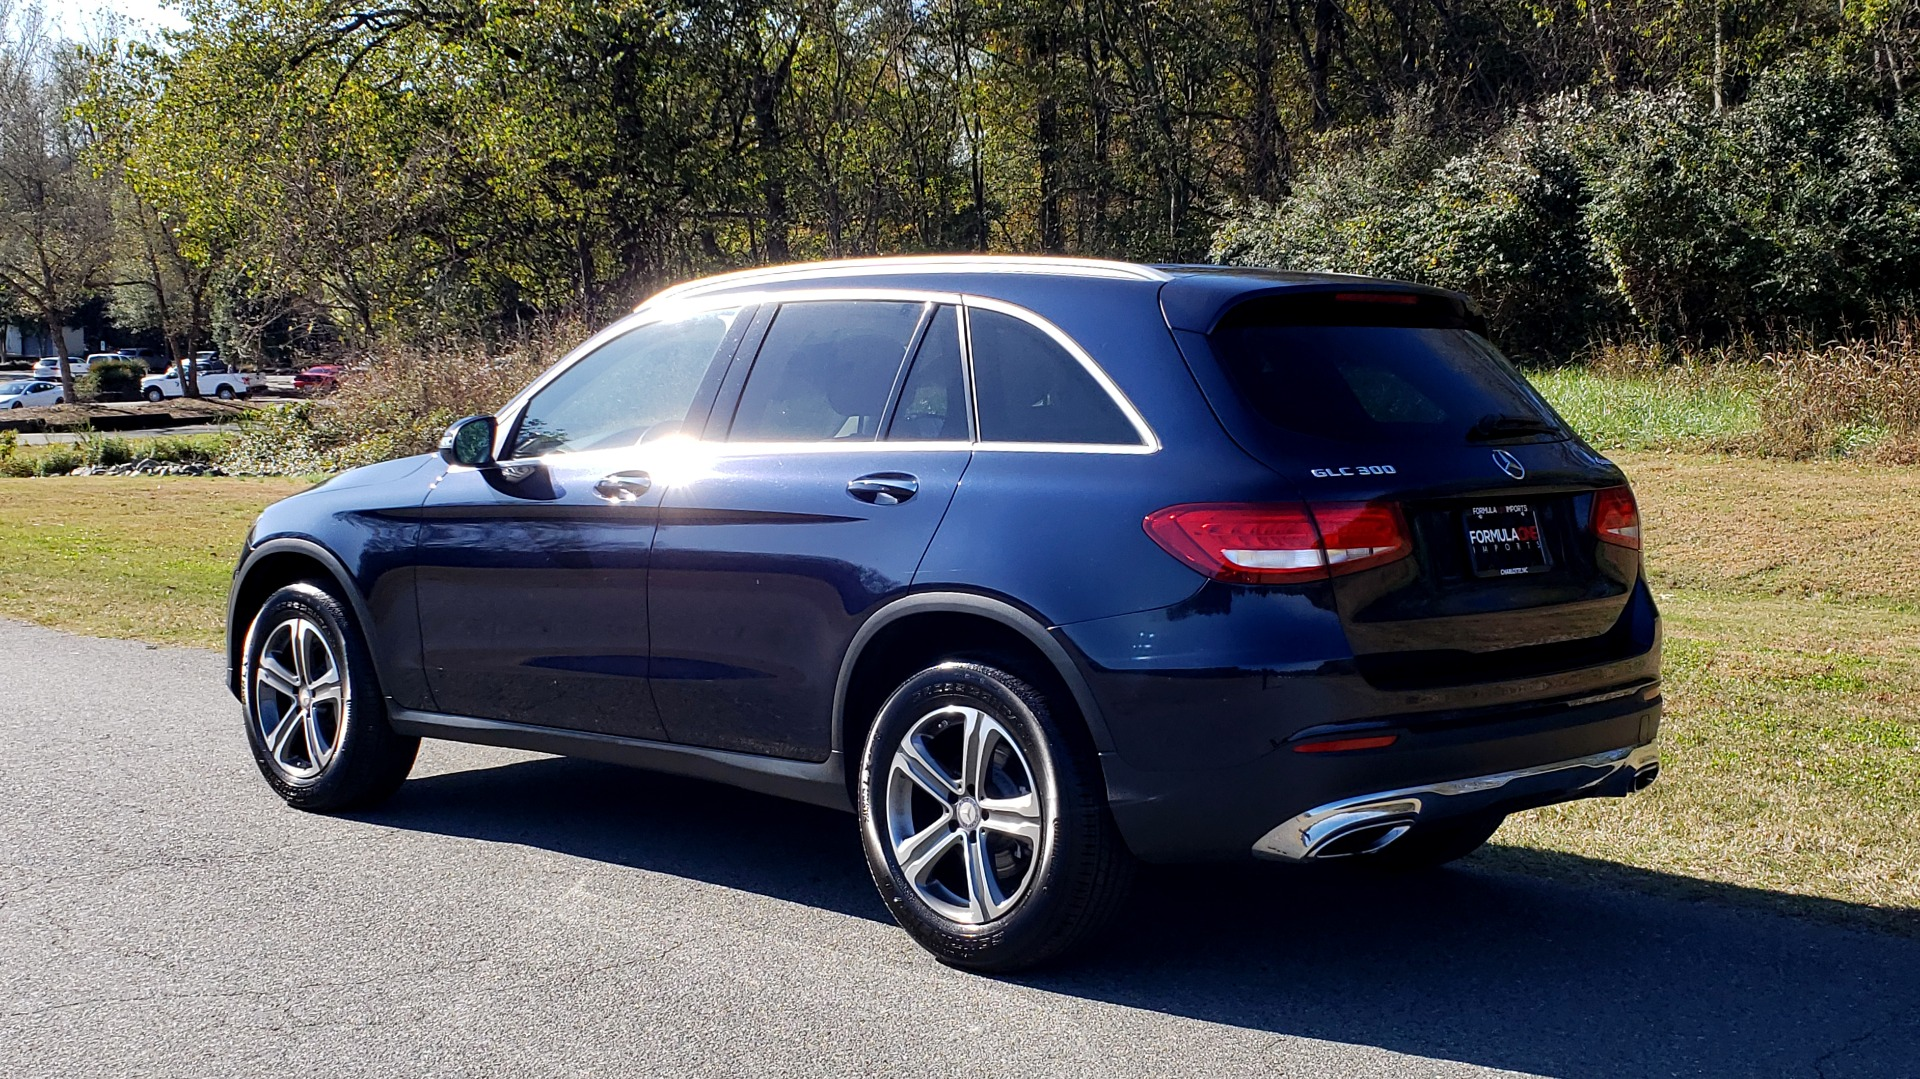 Used 2017 Mercedes-Benz GLC 300 4MATIC / PREM / NAV / KEYLESS-GO / SUNROOF / REARVIEW for sale Sold at Formula Imports in Charlotte NC 28227 3